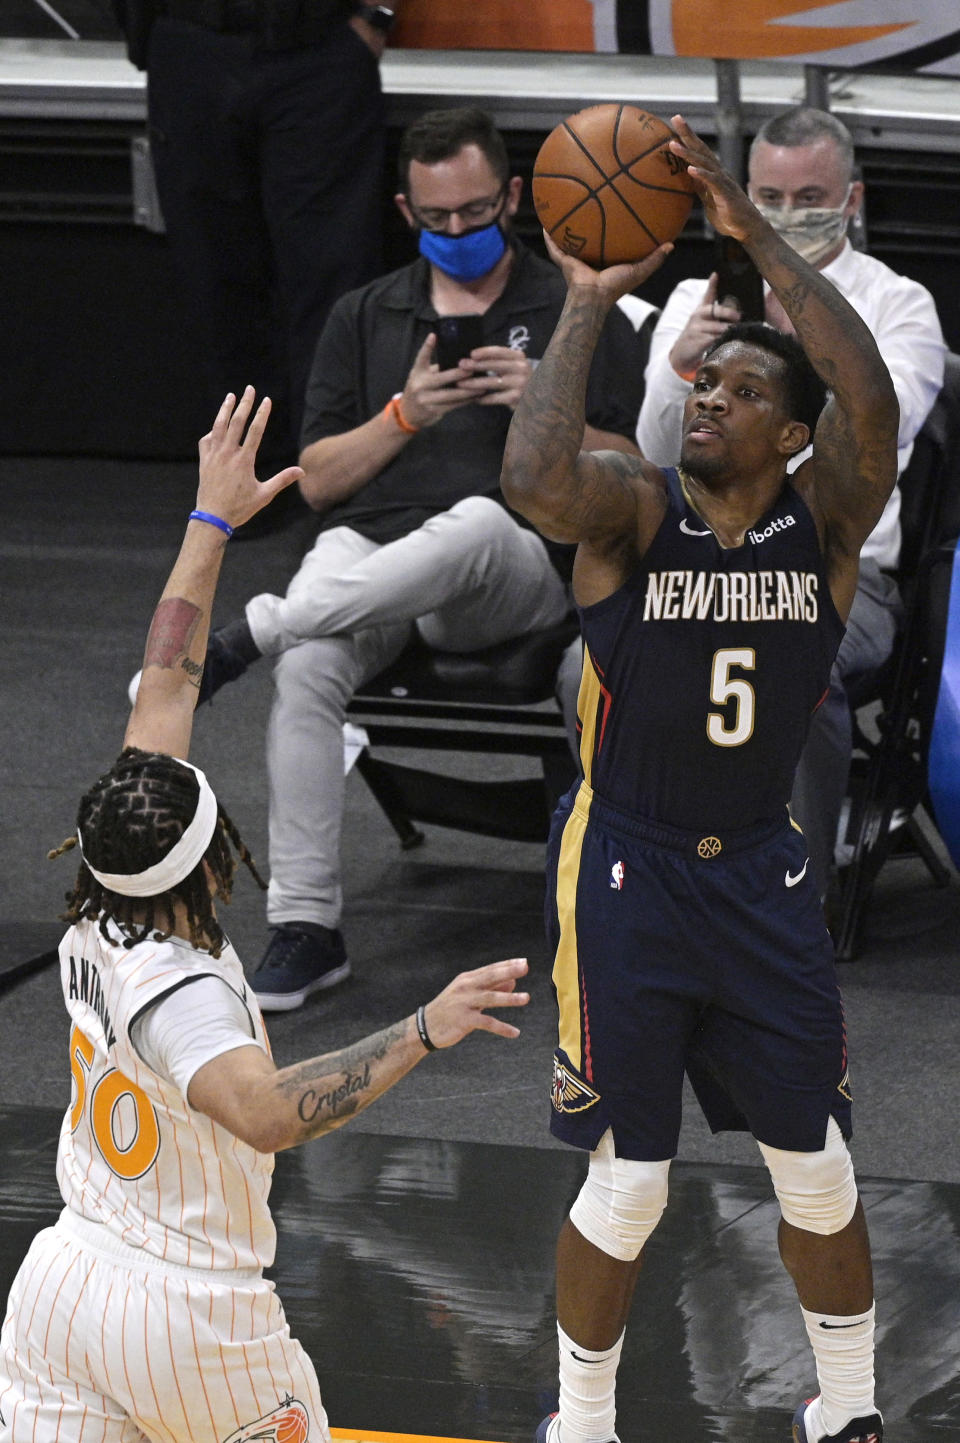 New Orleans Pelicans guard Eric Bledsoe (5) goes up for a shot in front of Orlando Magic guard Cole Anthony (50) during the second half of an NBA basketball game Thursday, April 22, 2021, in Orlando, Fla. (AP Photo/Phelan M. Ebenhack)